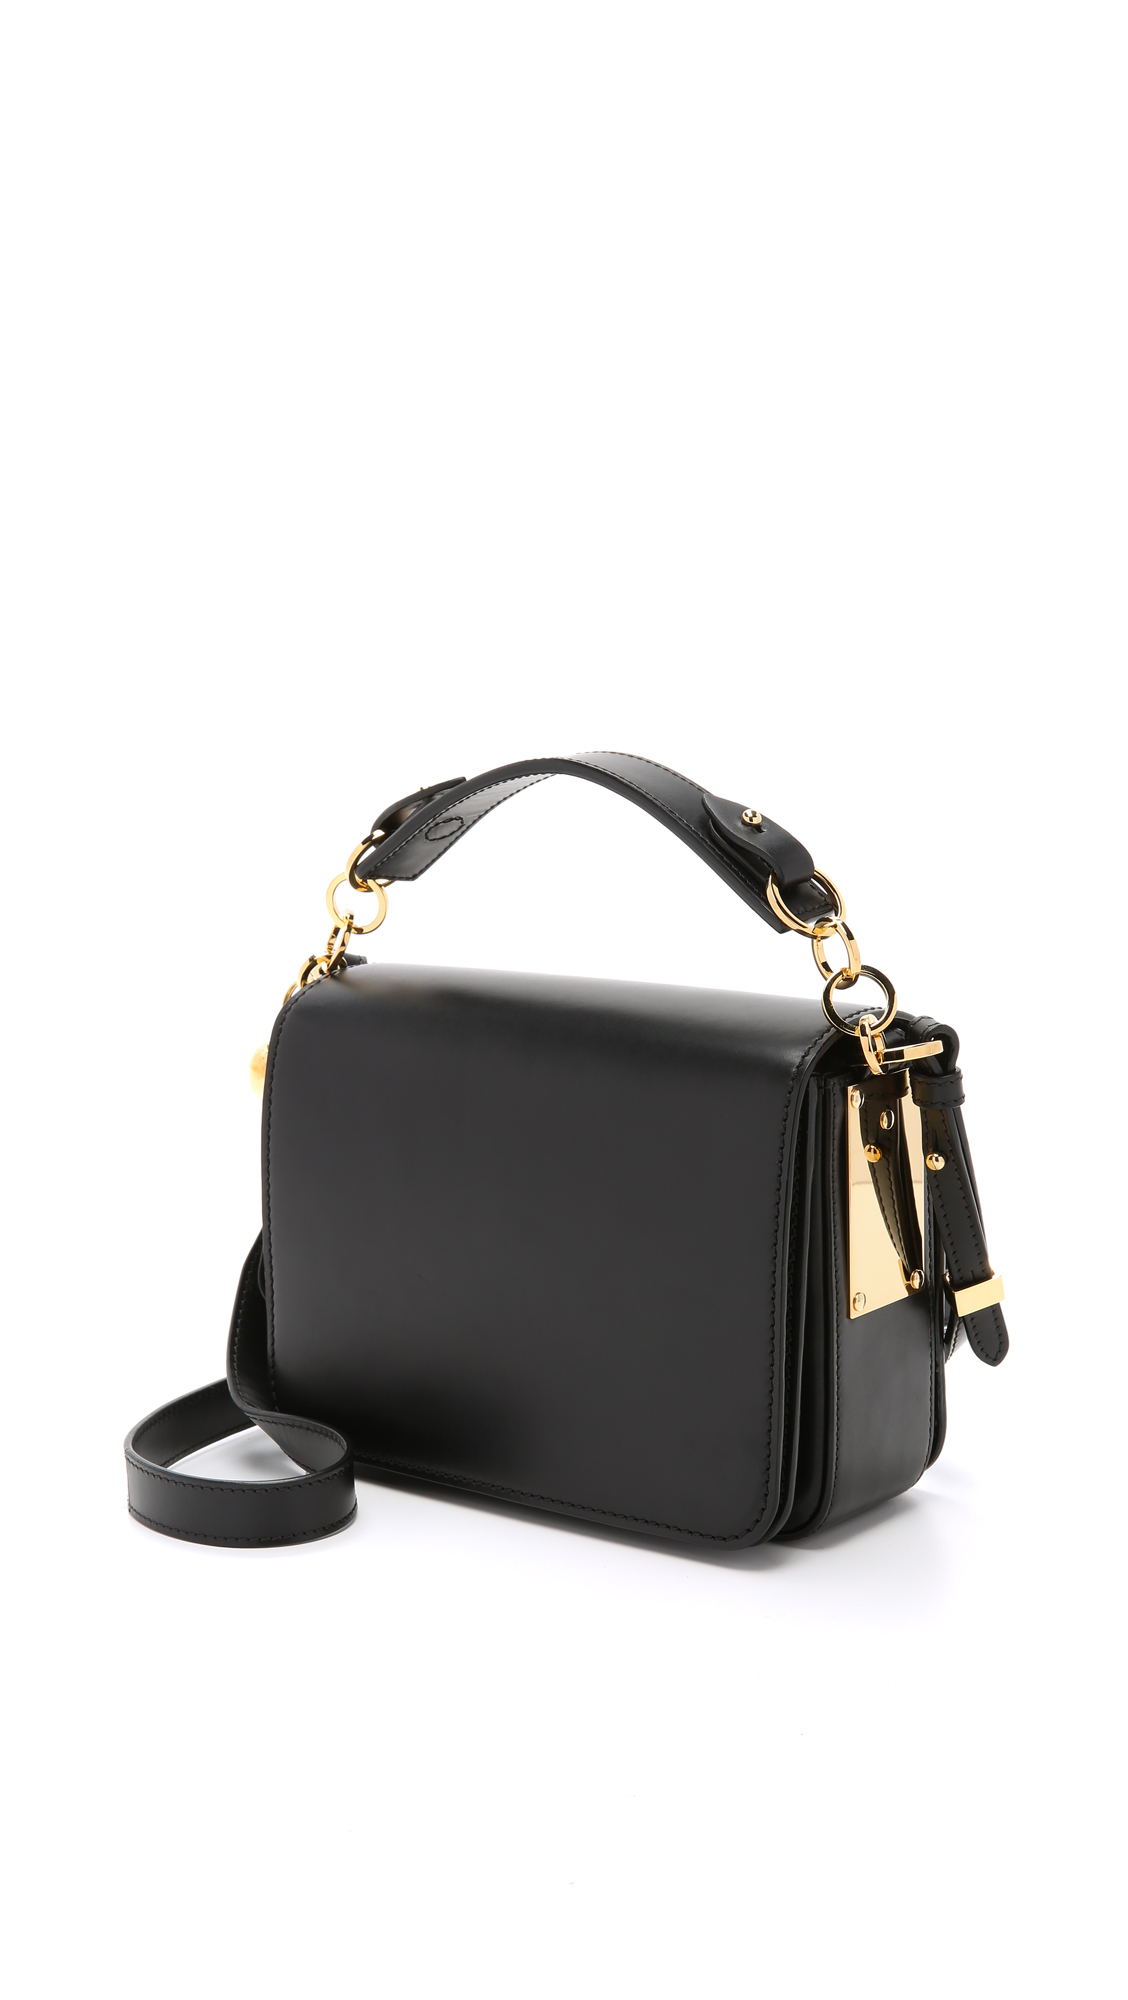 Sophie hulme Structured Cross Body Messenger Bag - Black in Black ...